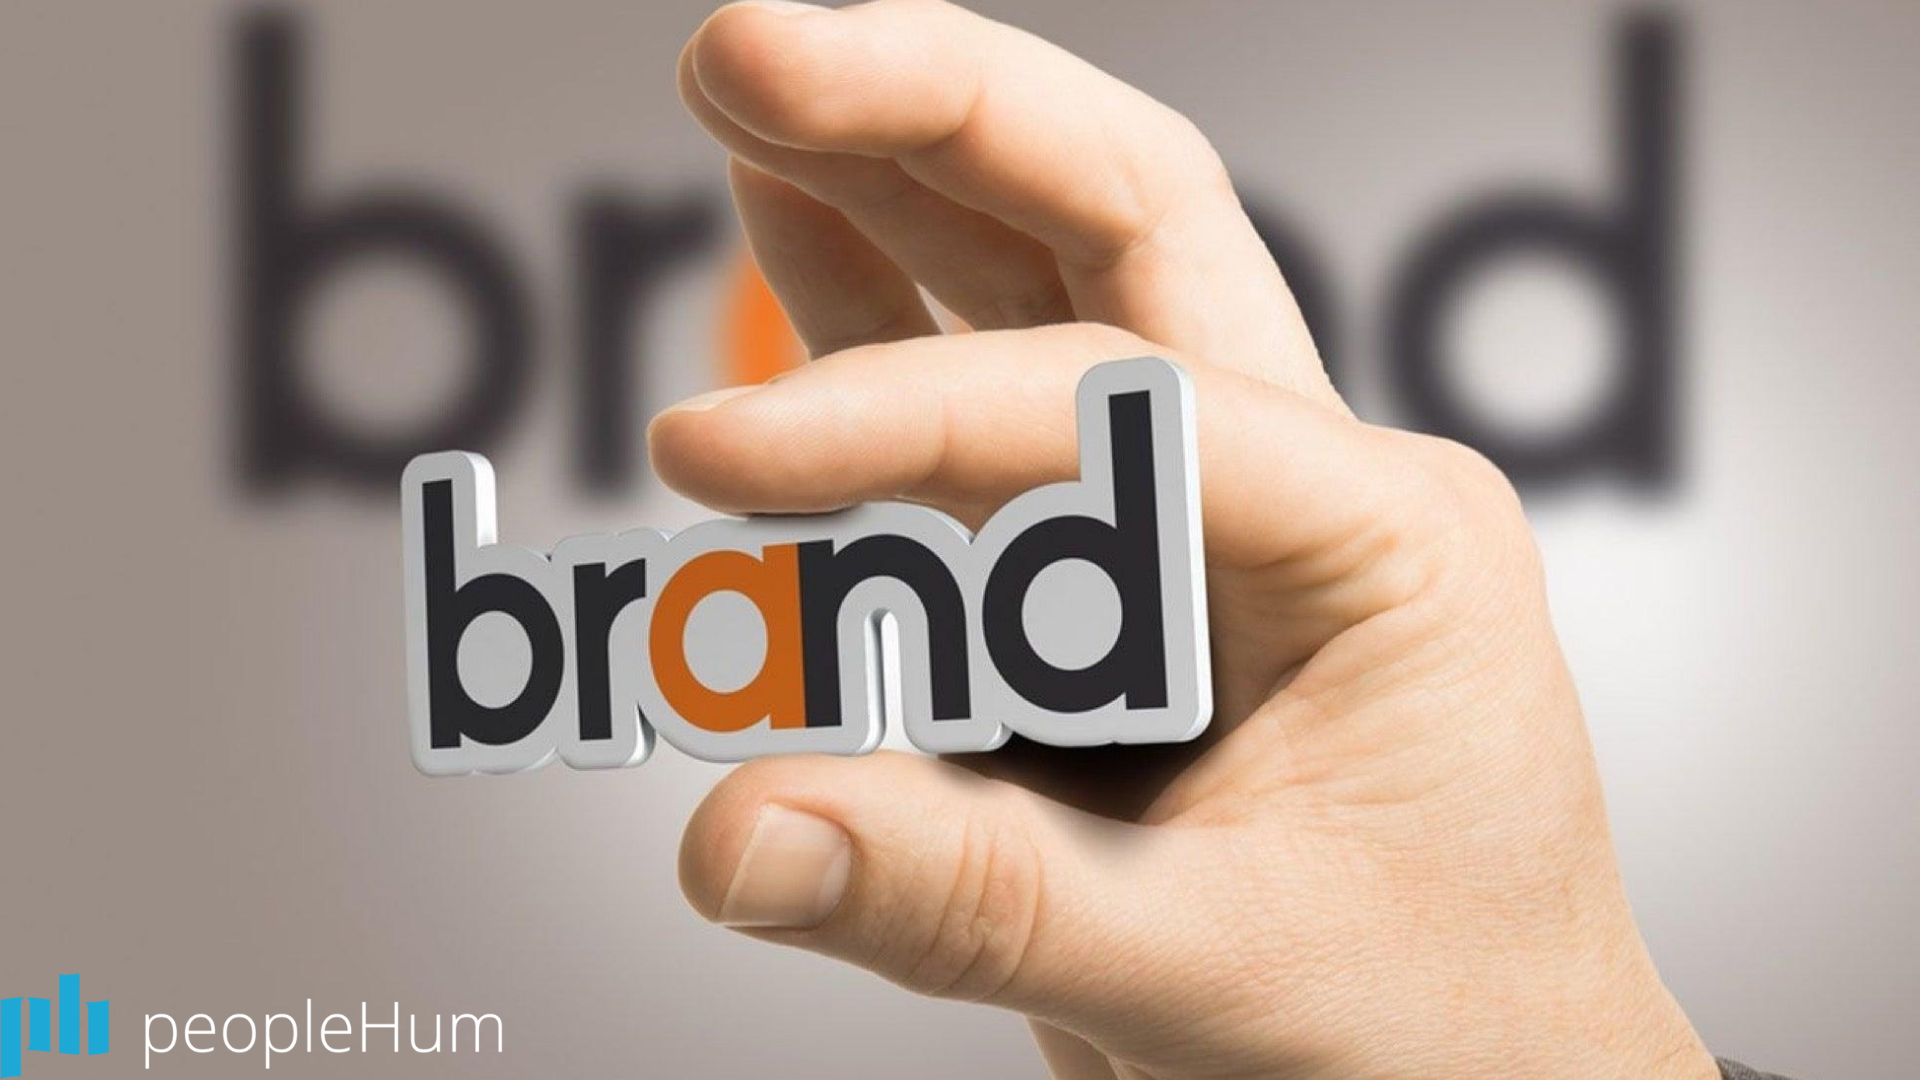 Let your brand name engage and your business soar